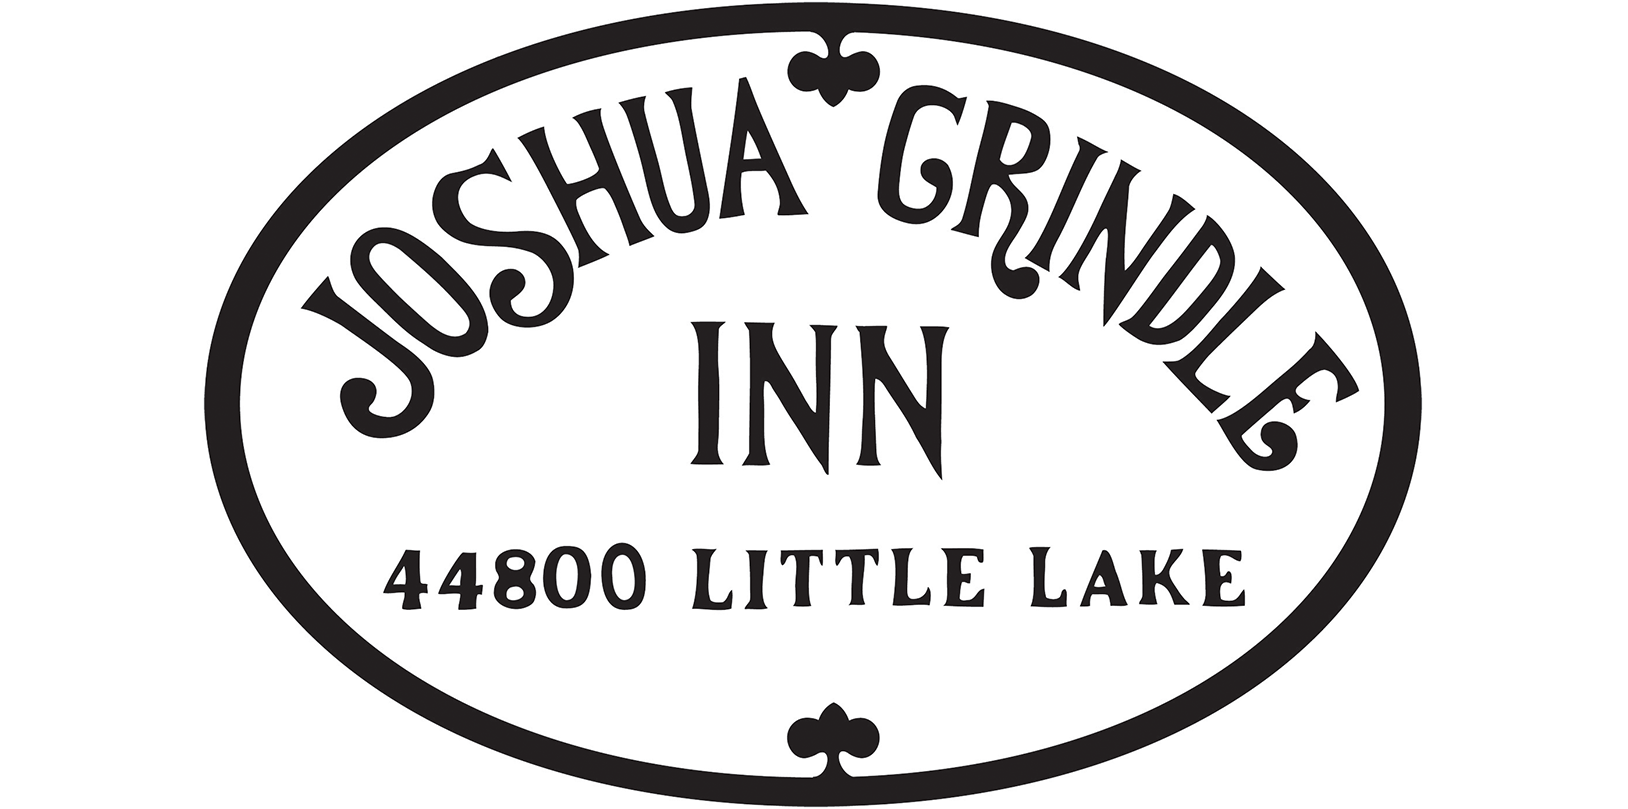 Joshua Grindle Inn - 15% off rooms 4/20 weekend(707) 937-6022